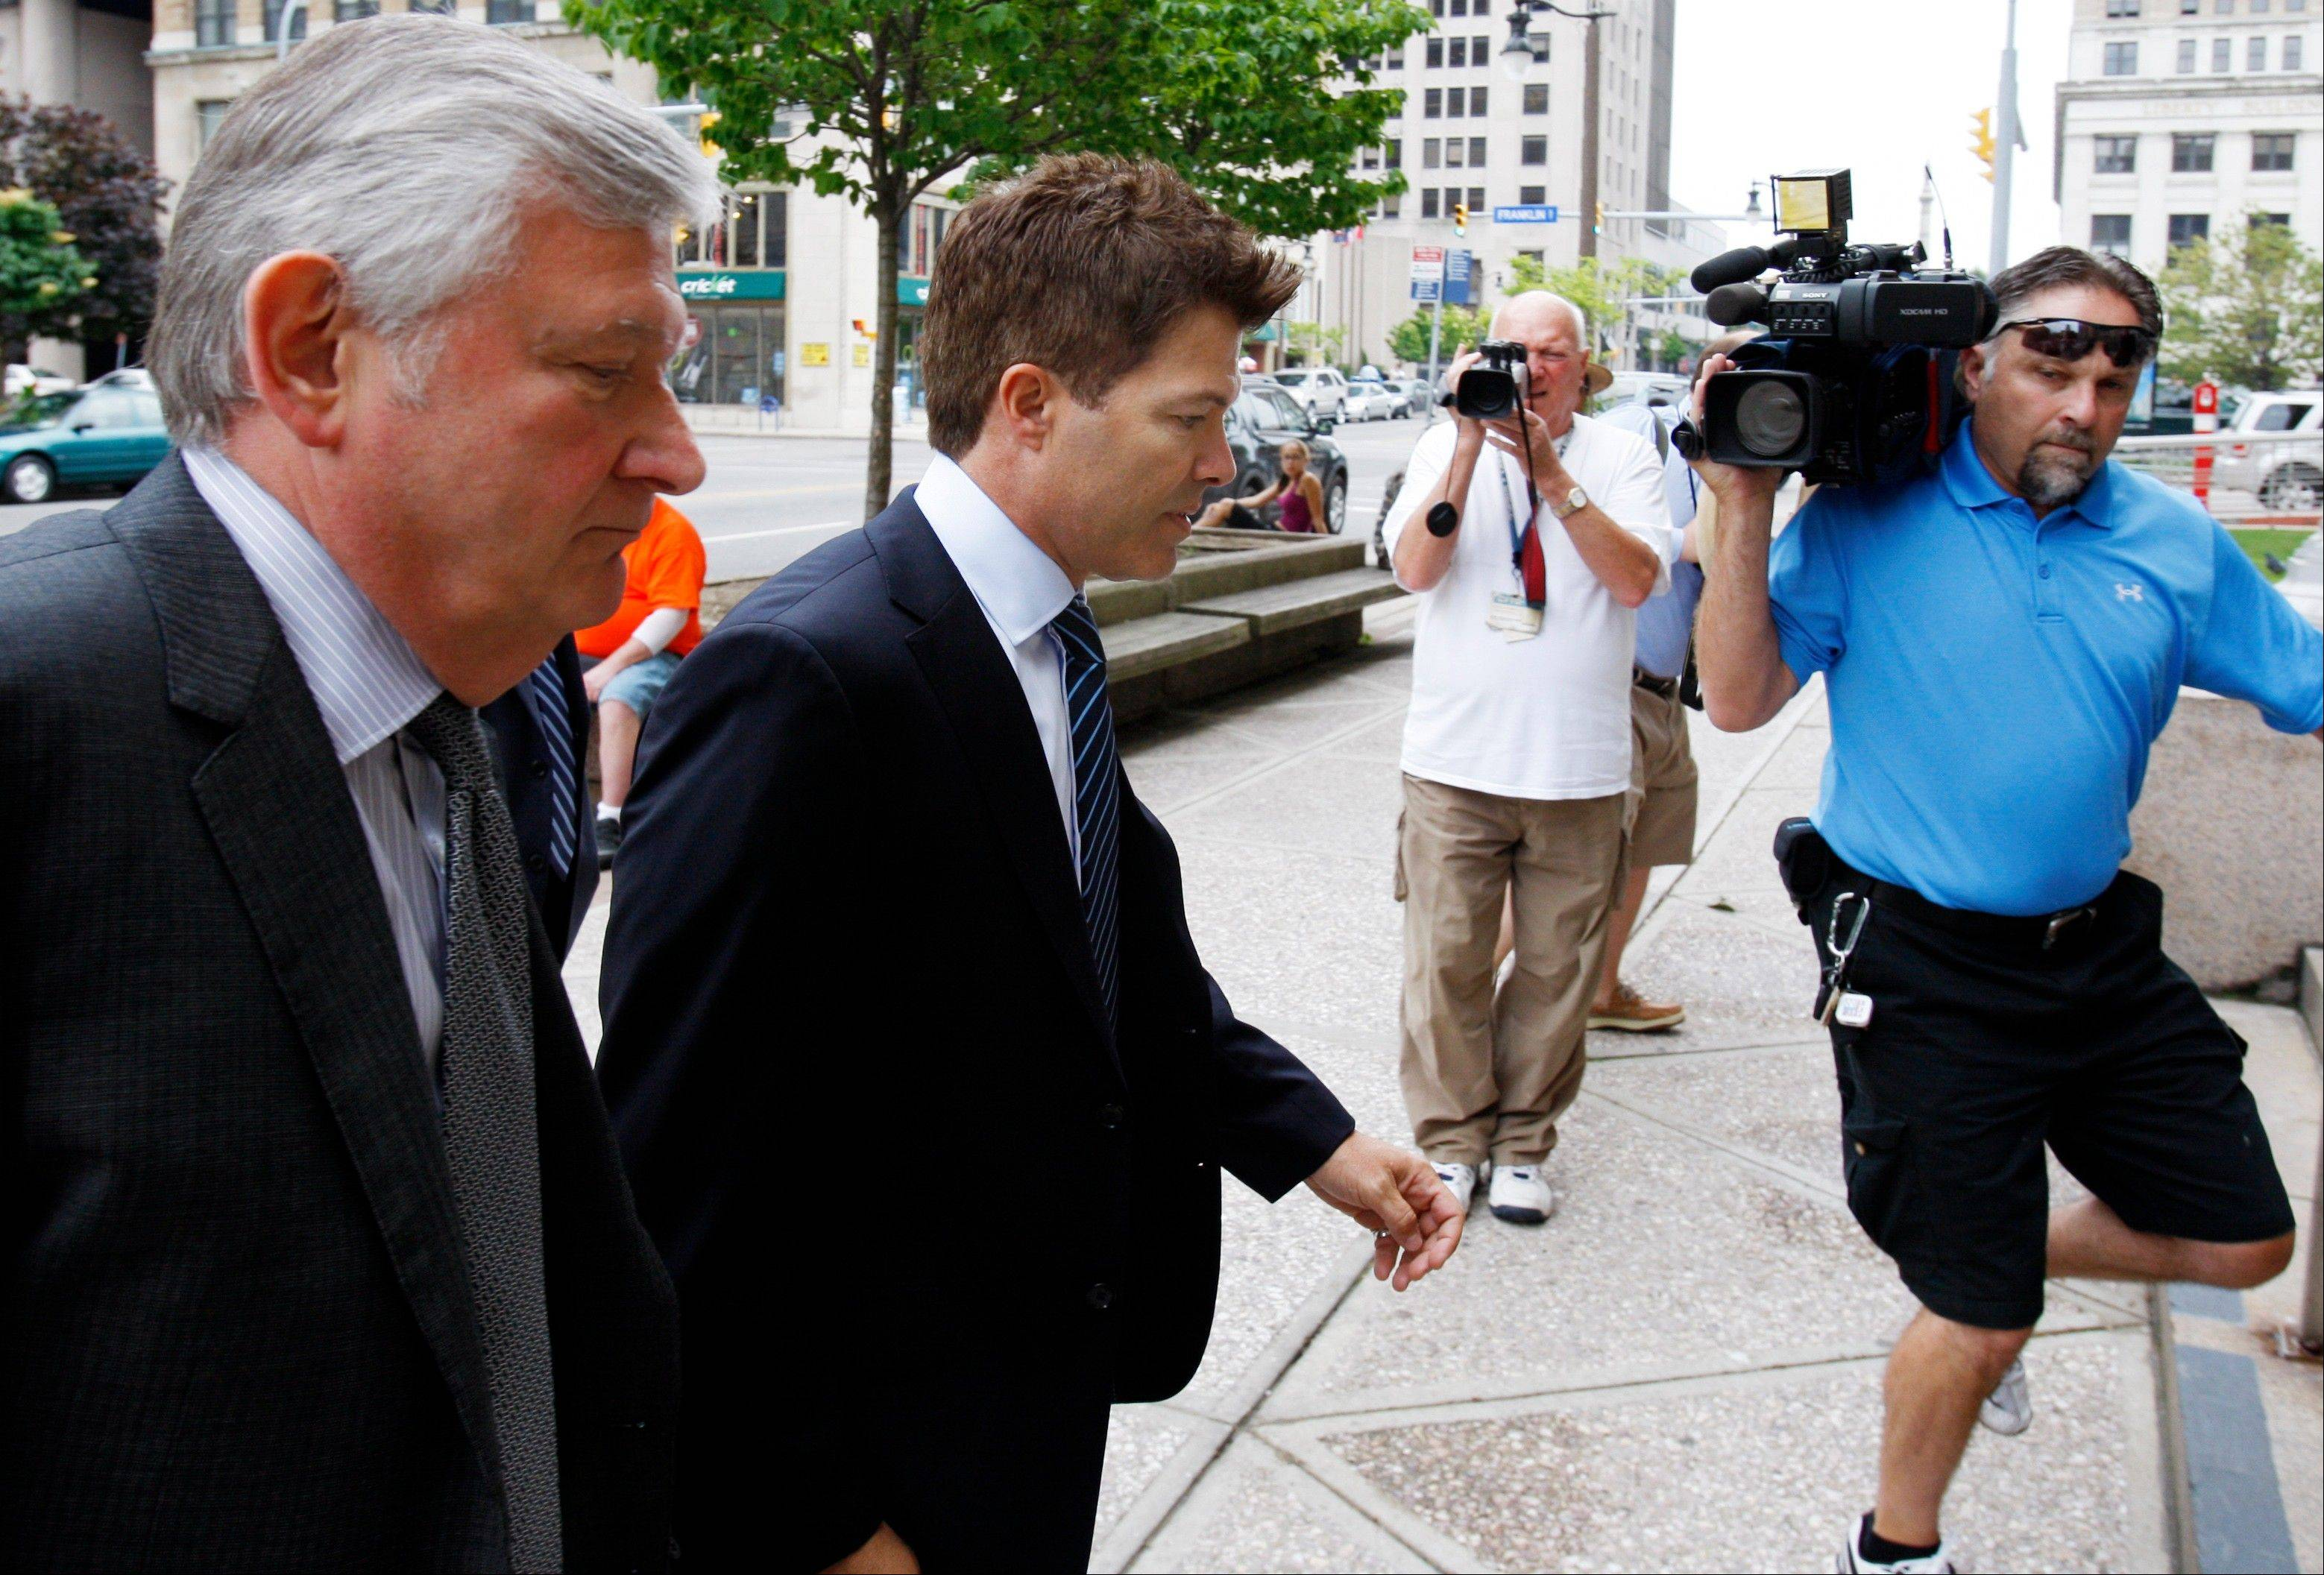 Dr. Anthony Galea, center, arrives at federal court in Buffalo, N.Y., Wednesday, July 6. The Toronto doctor was indicted in October on charges he smuggled in human growth hormone and other substances and lied to border agents to avoid getting caught. (AP Photo/David Duprey)